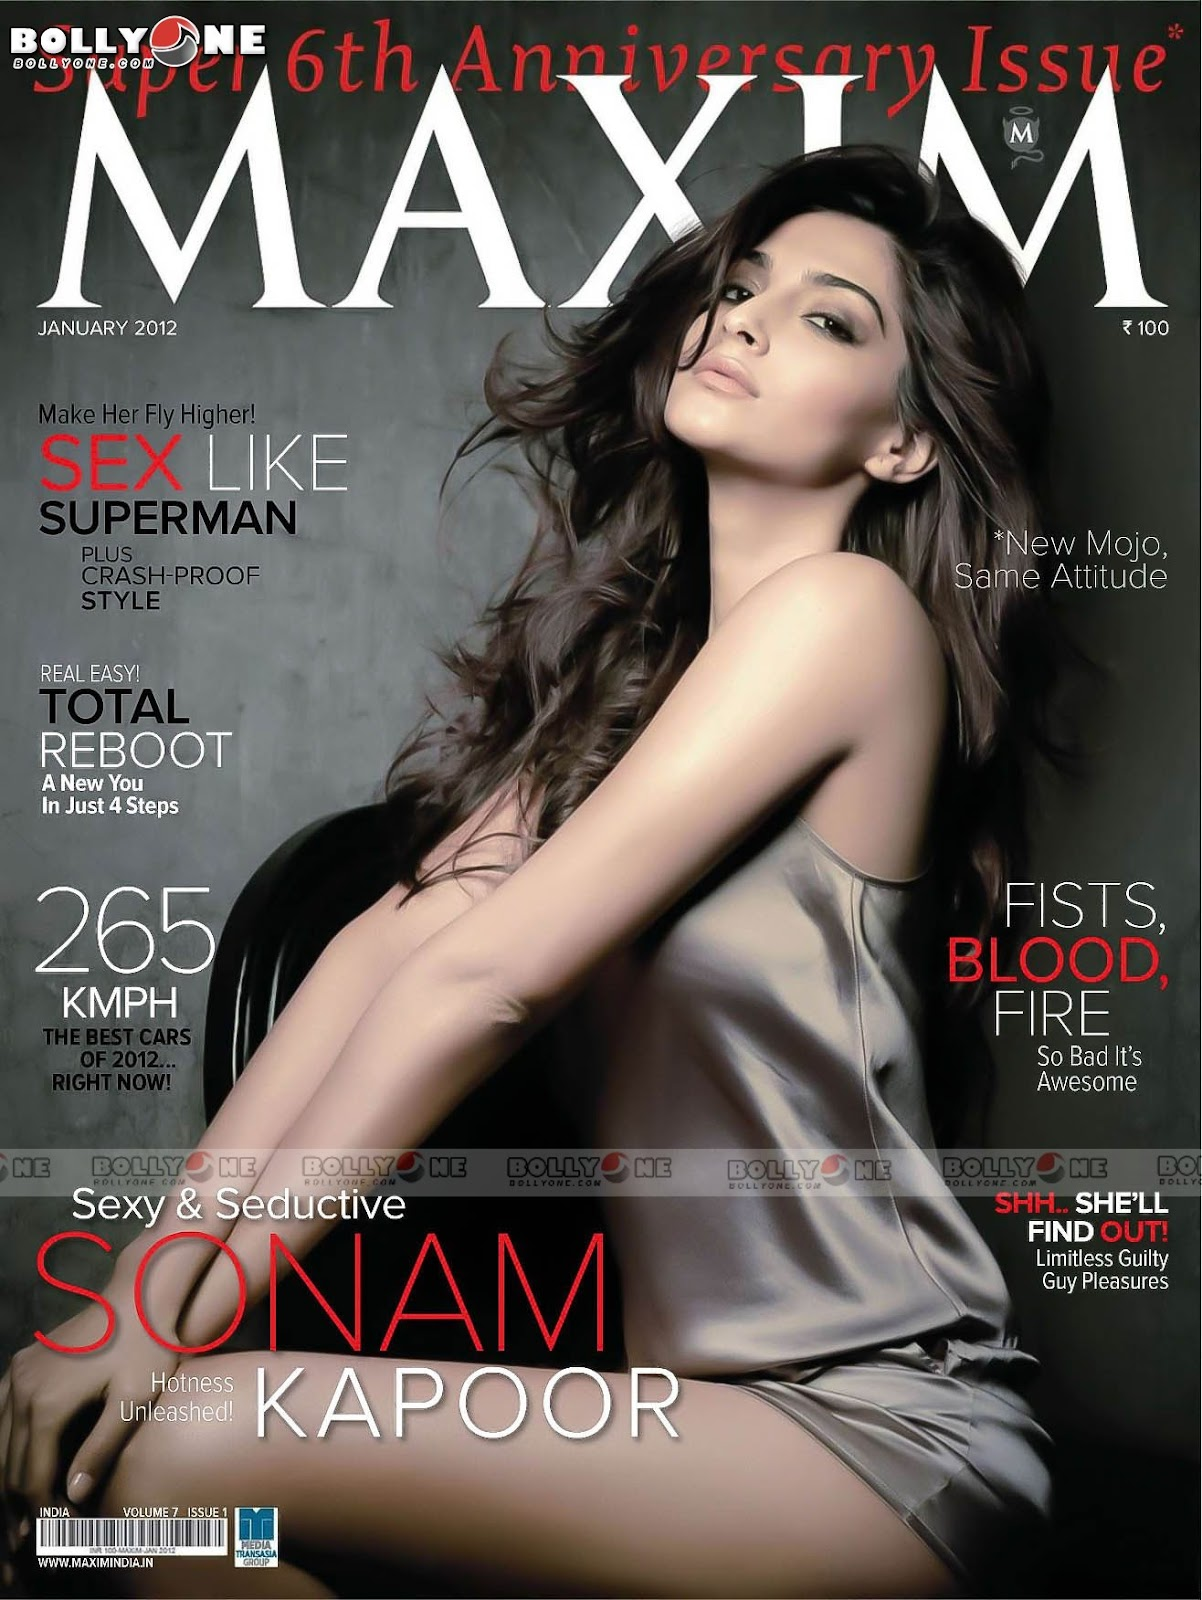 Sonam Kapoor Maxim Scan Wallpaper1 - Sonam Kapoor MAXIM HQ Wallpapers